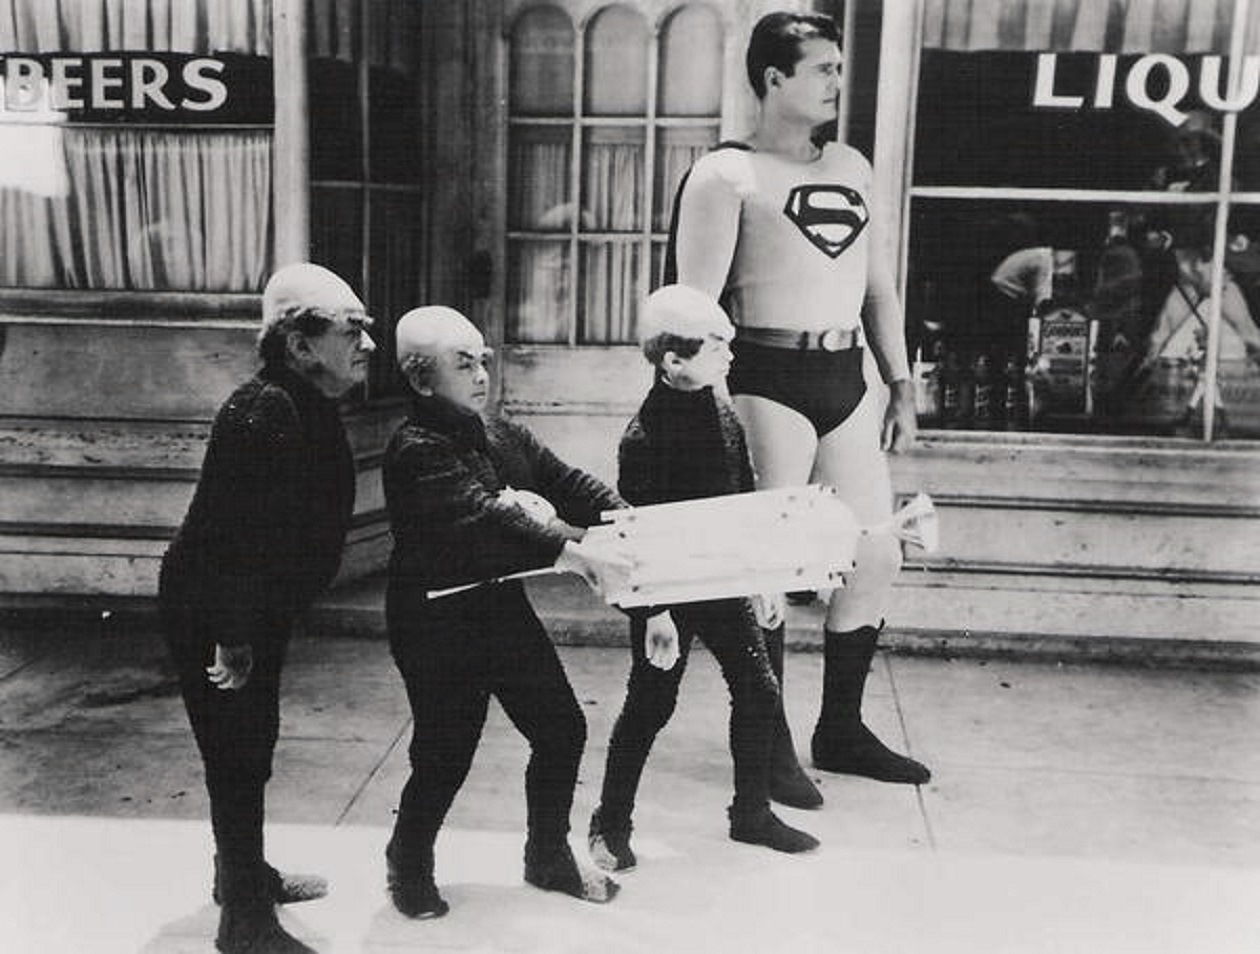 Superman (George Reeves) accompanied by the Mole-Men